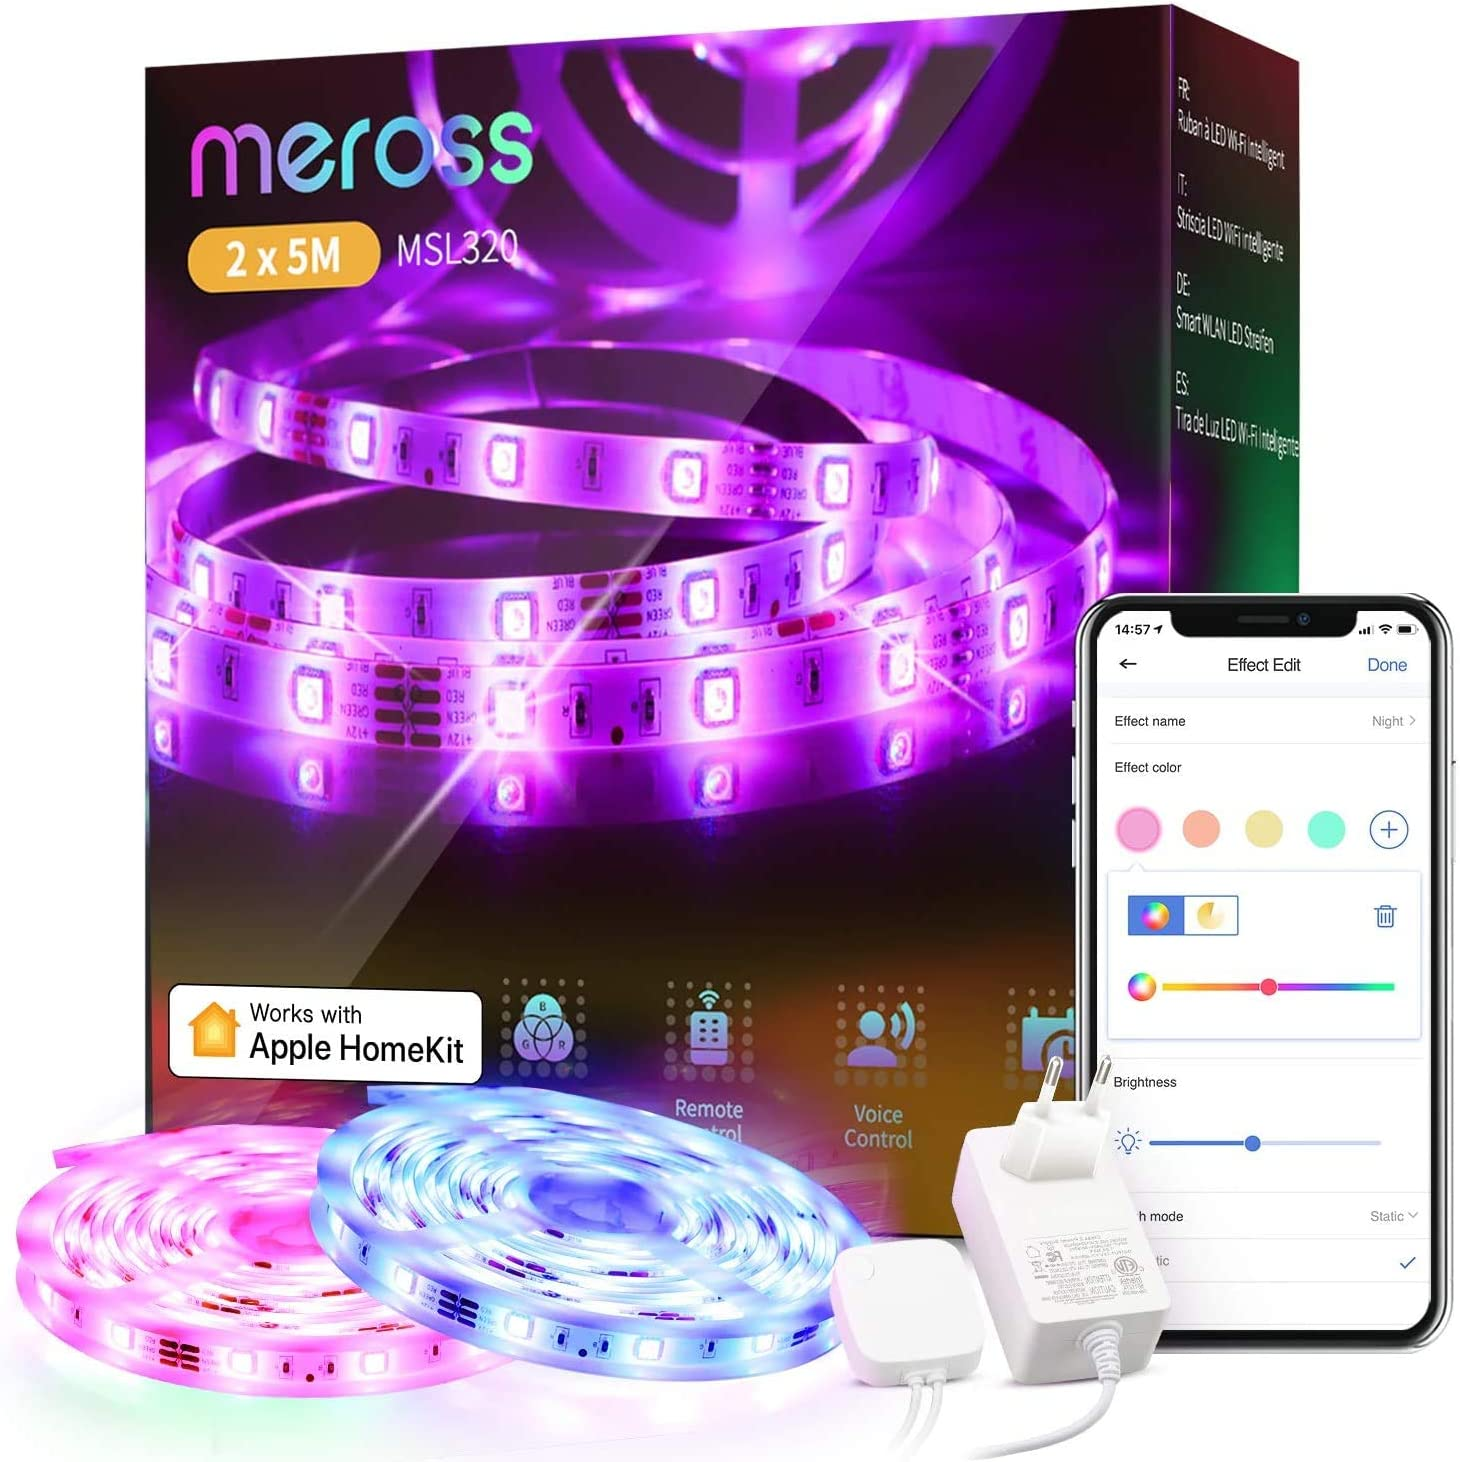 Led Strip Lights Works with Apple HomeKit, meross Smart 5050 RGB Strip, Compatible with Siri, Alexa&Google and SmartTings, for Home, Kitchen, Bedroom, Party, Christmas, Halloween, (2X5M)